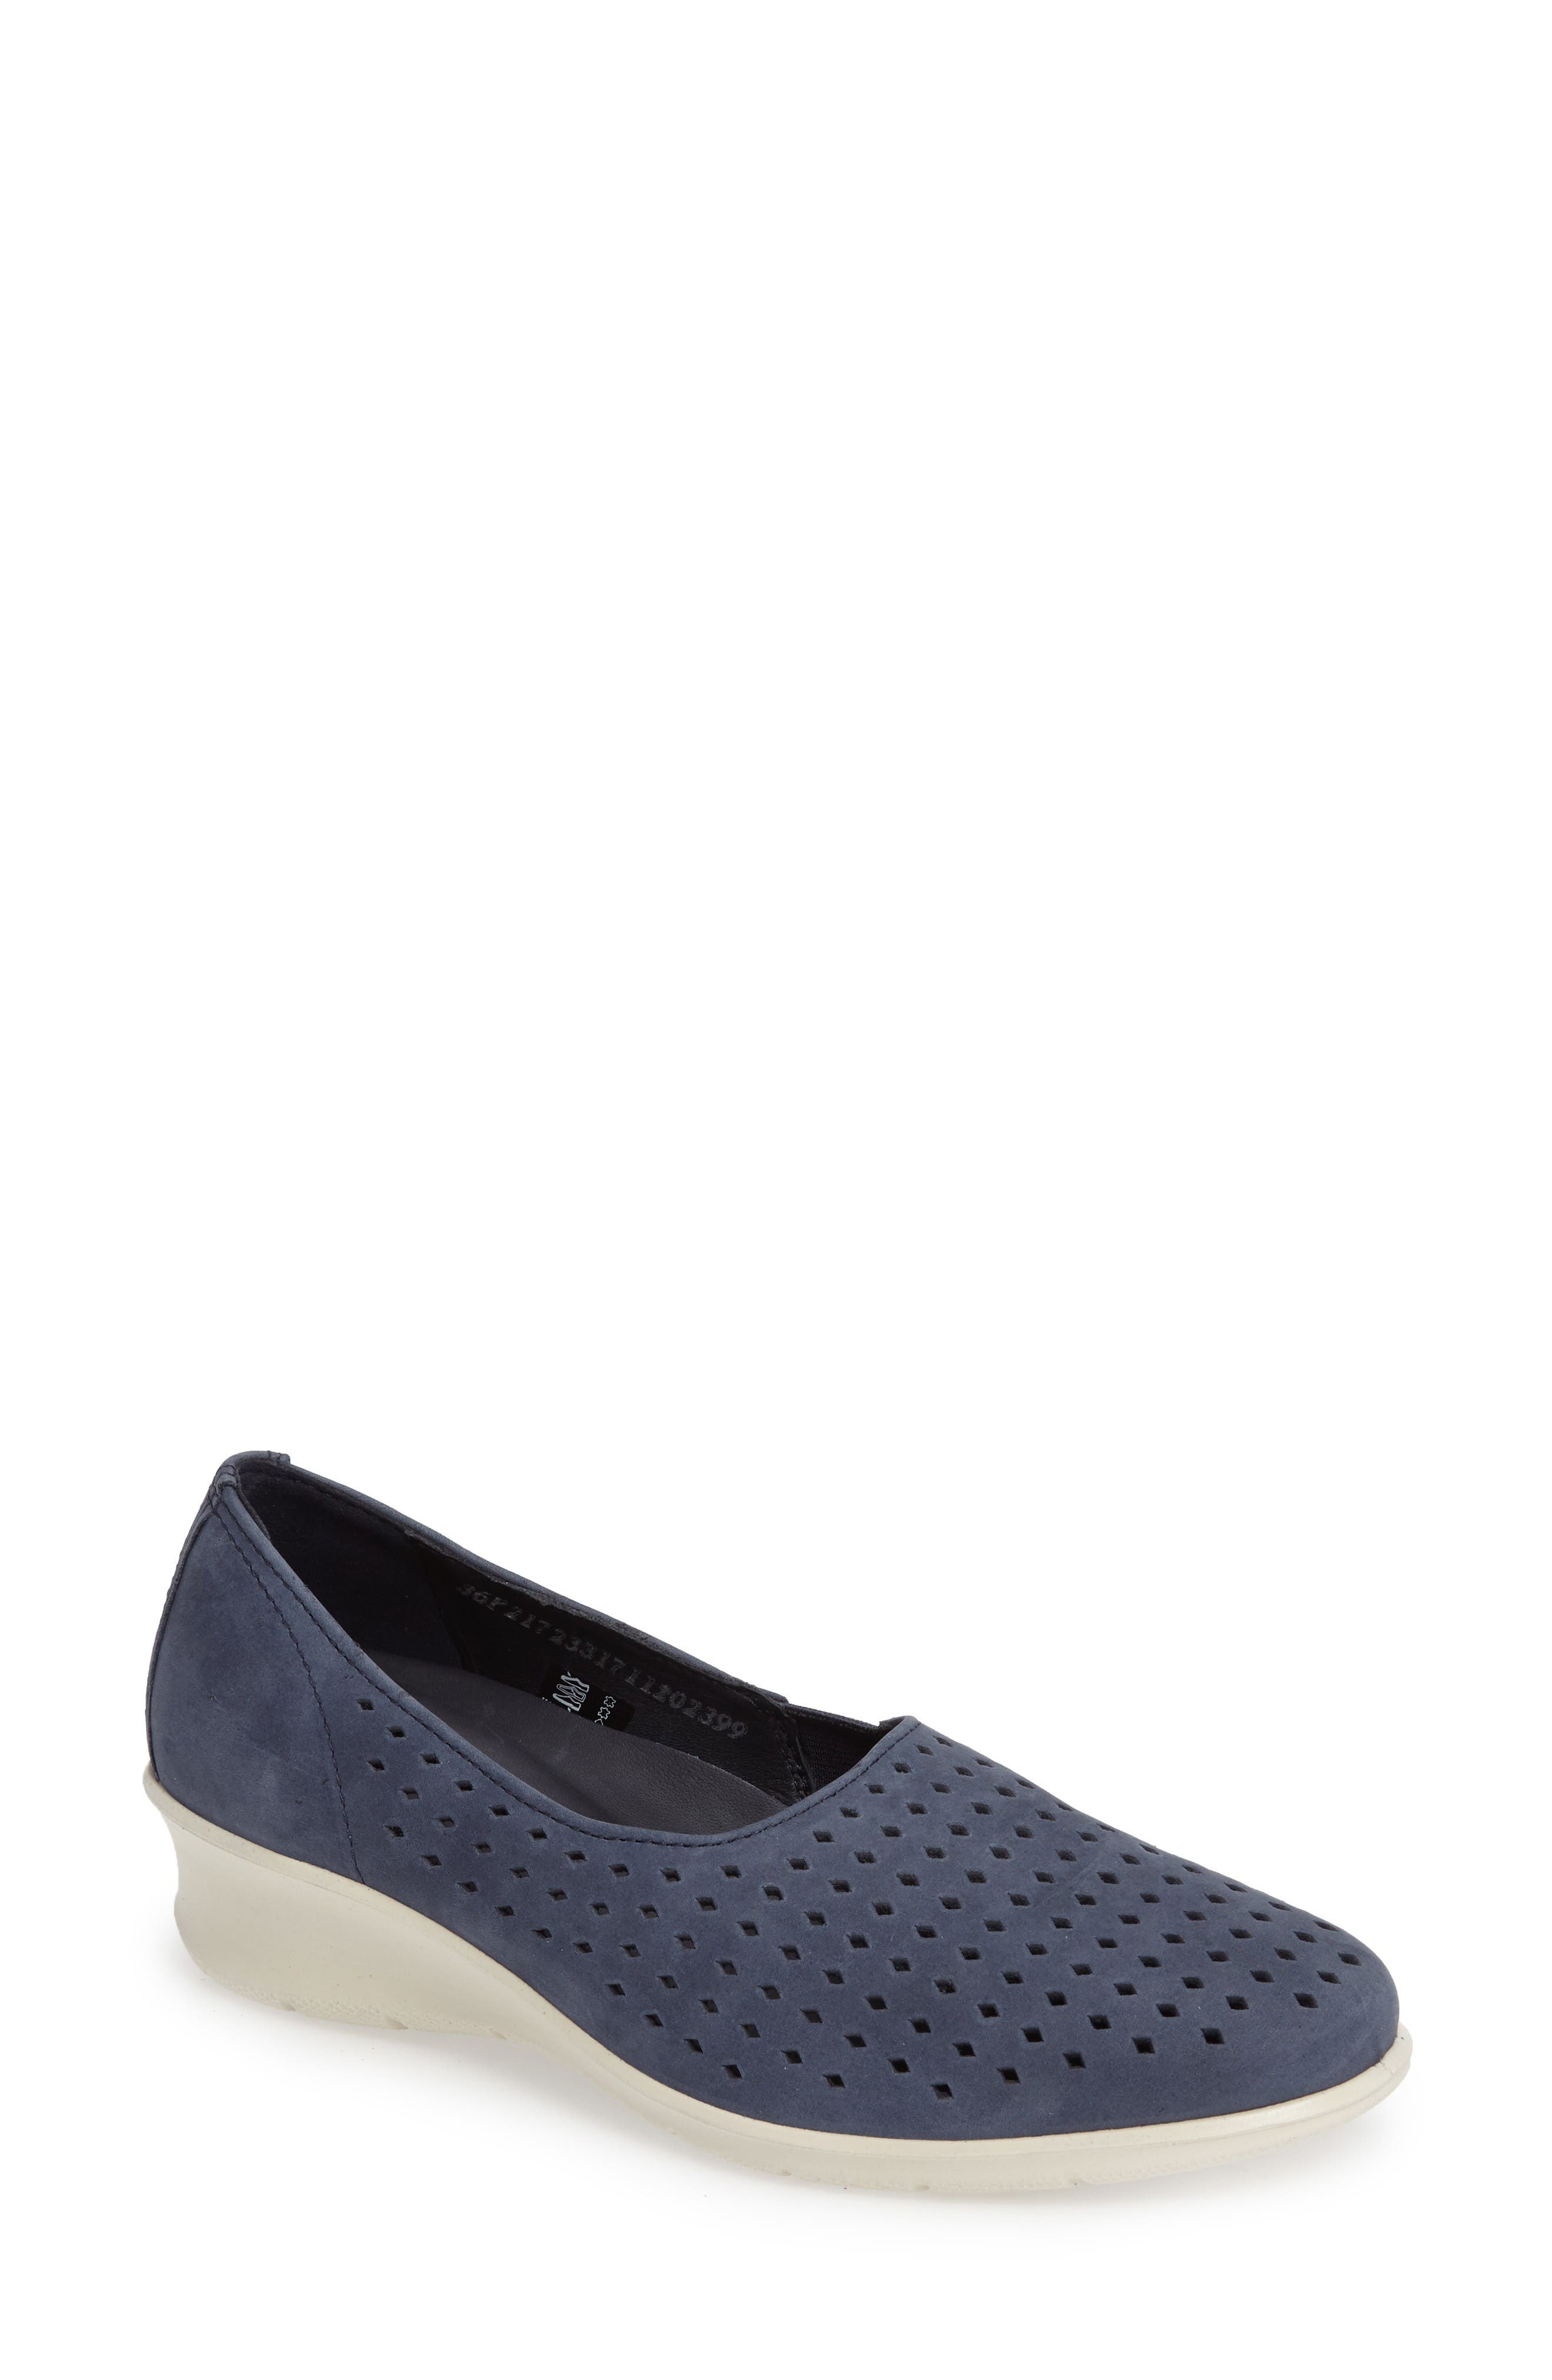 Alternate Image 1 Selected - ECCO Felicia Summer Loafer (Women)